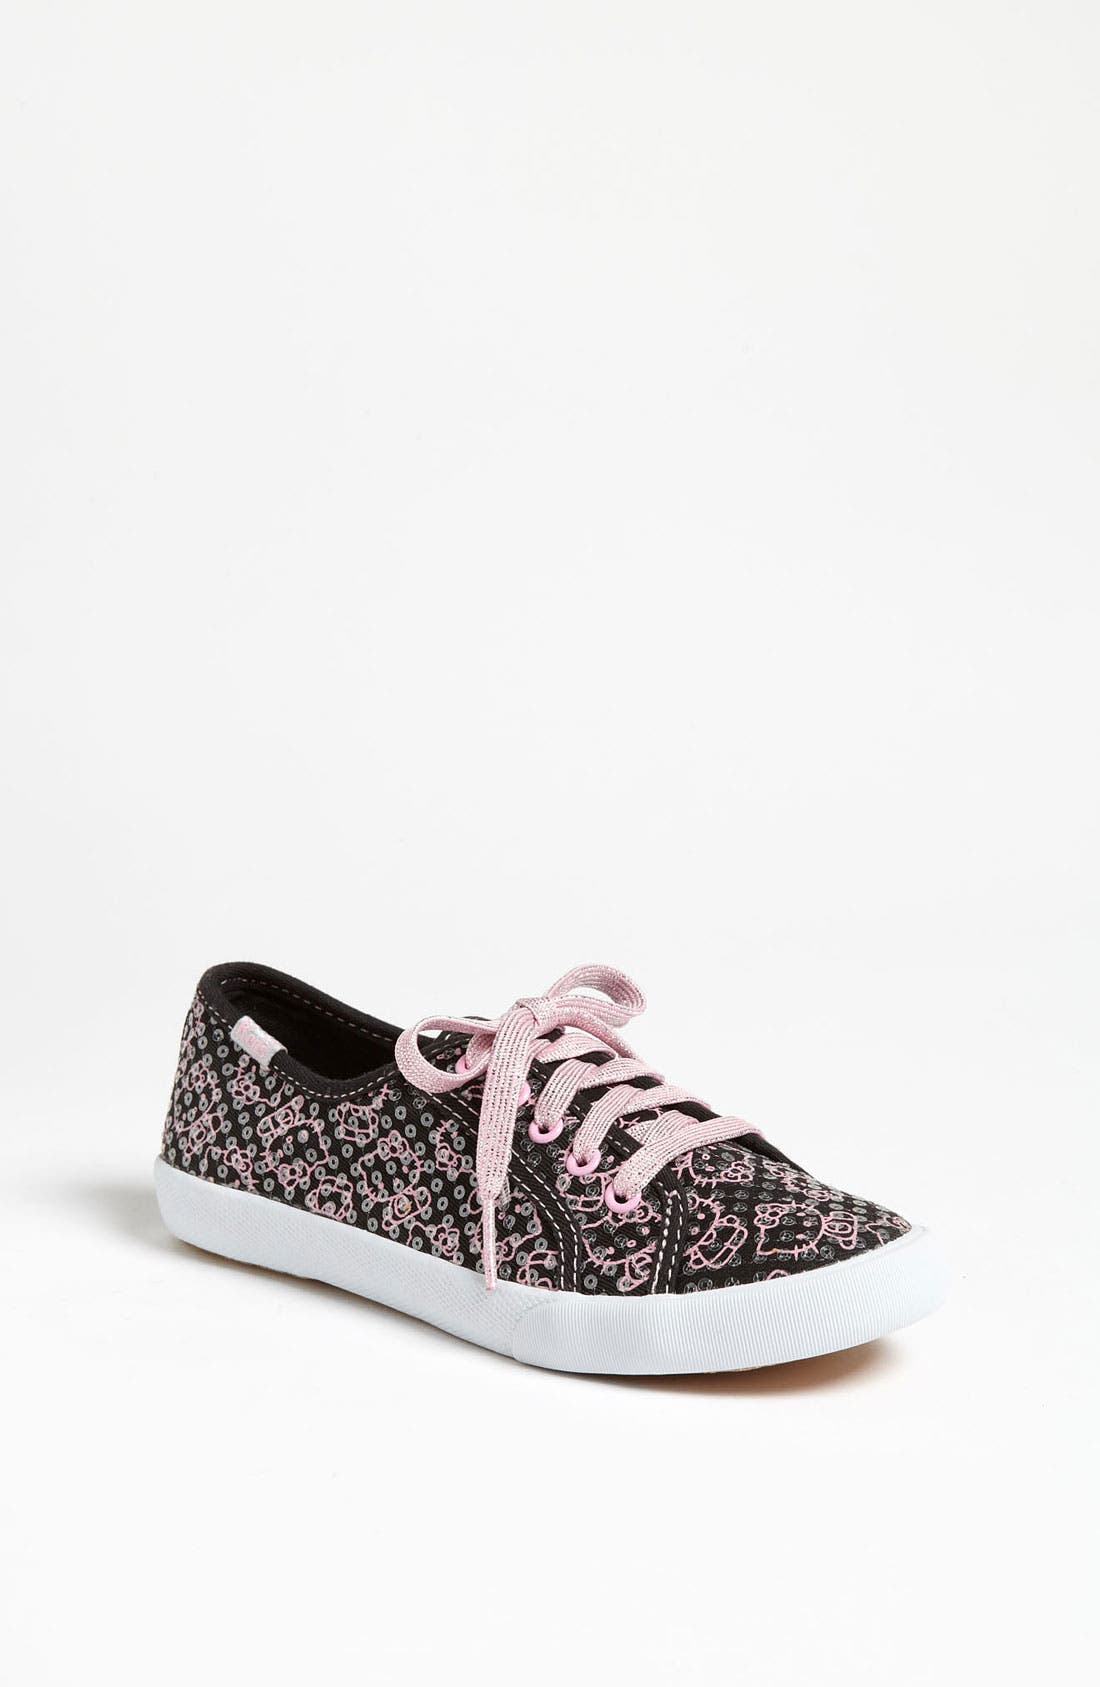 Alternate Image 1 Selected - Keds® 'Hello Kitty®' Sneaker (Little Kid & Big Kid)